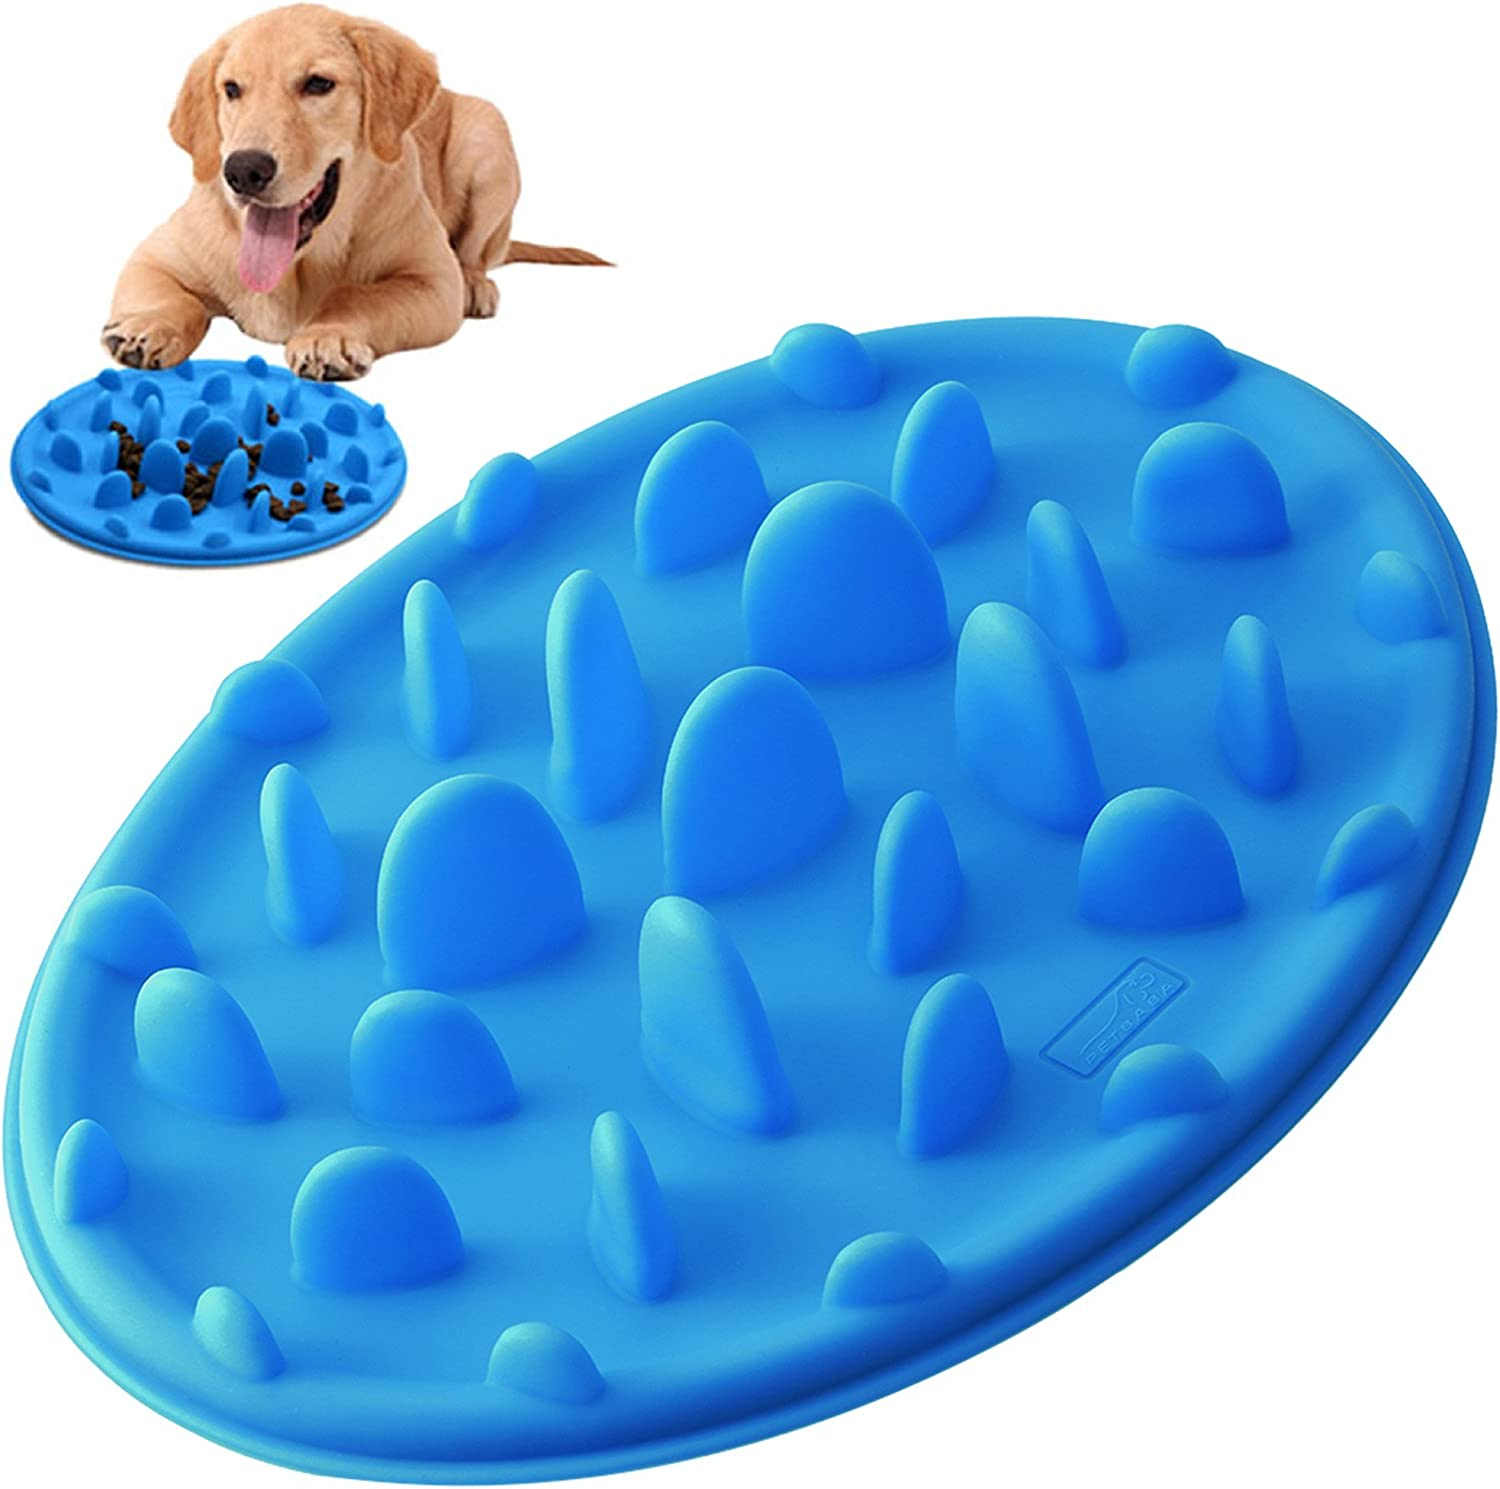 petbaba-slow-feed-silicone-dog-feeder